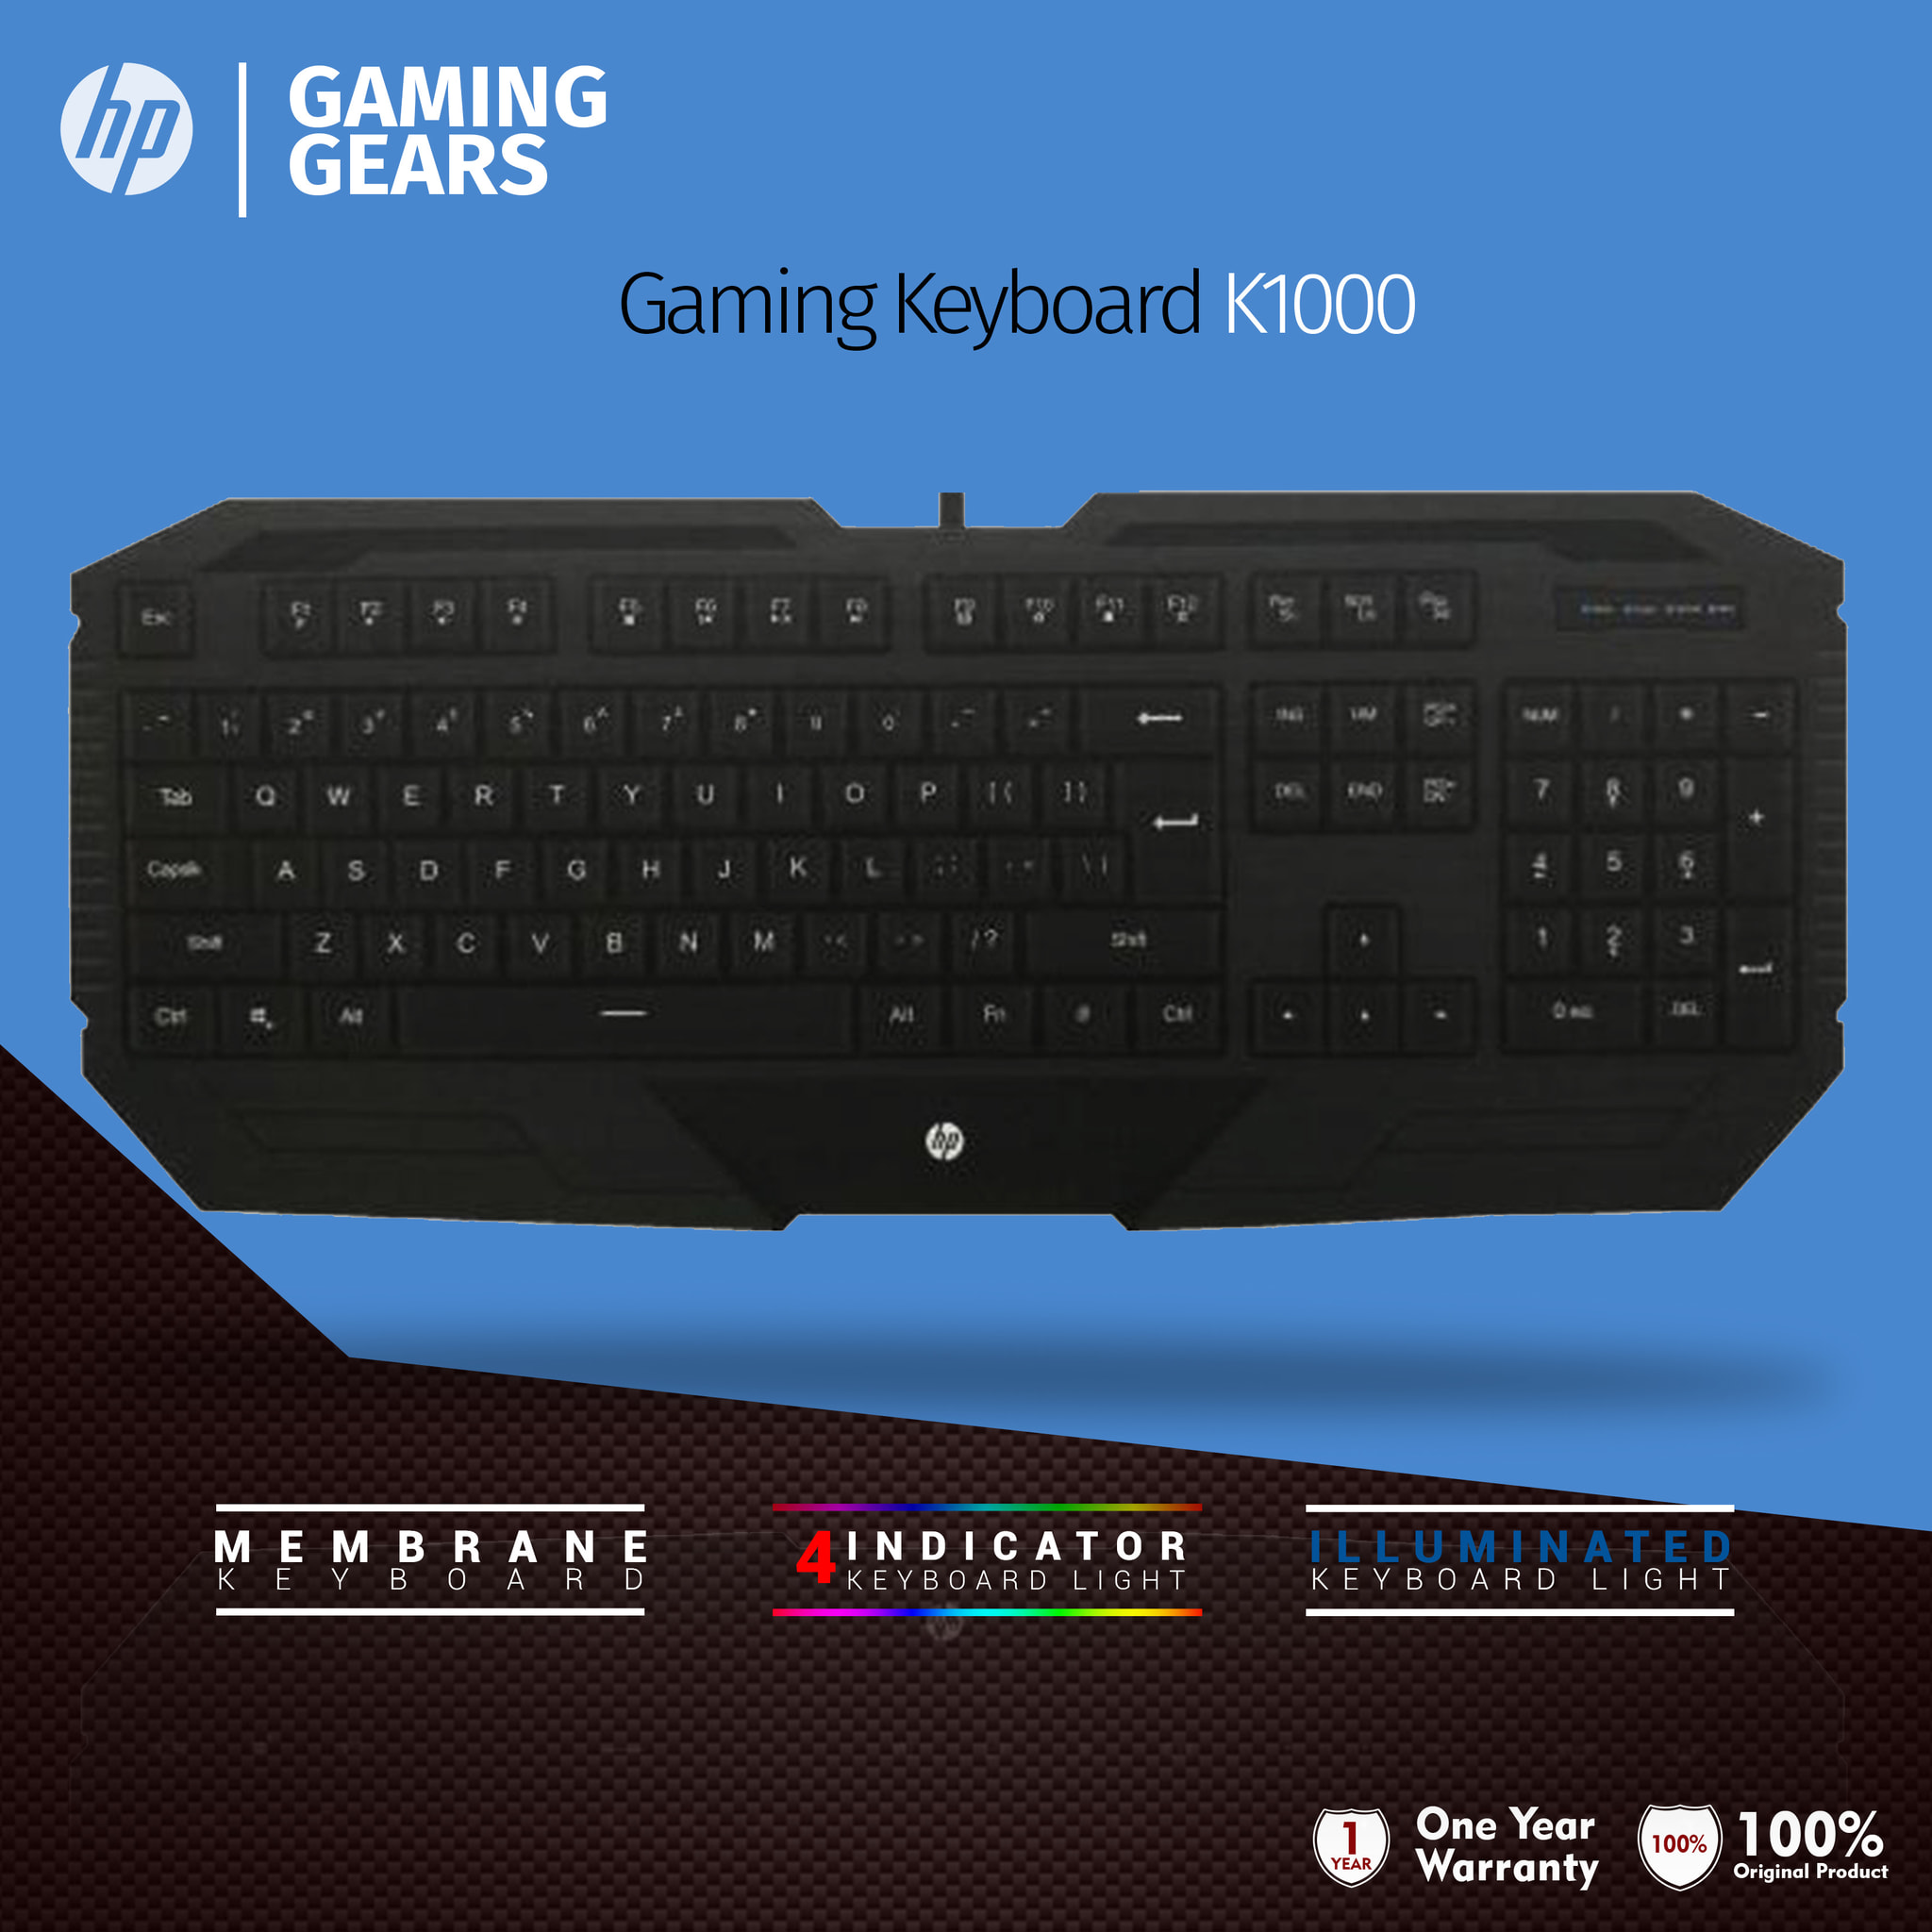 Jual Keyboard Gaming Hp K1000 Garansi Resmi Flashdisk Sandisk Cruzer Blade 16gb Usb Flash Drive Cz50